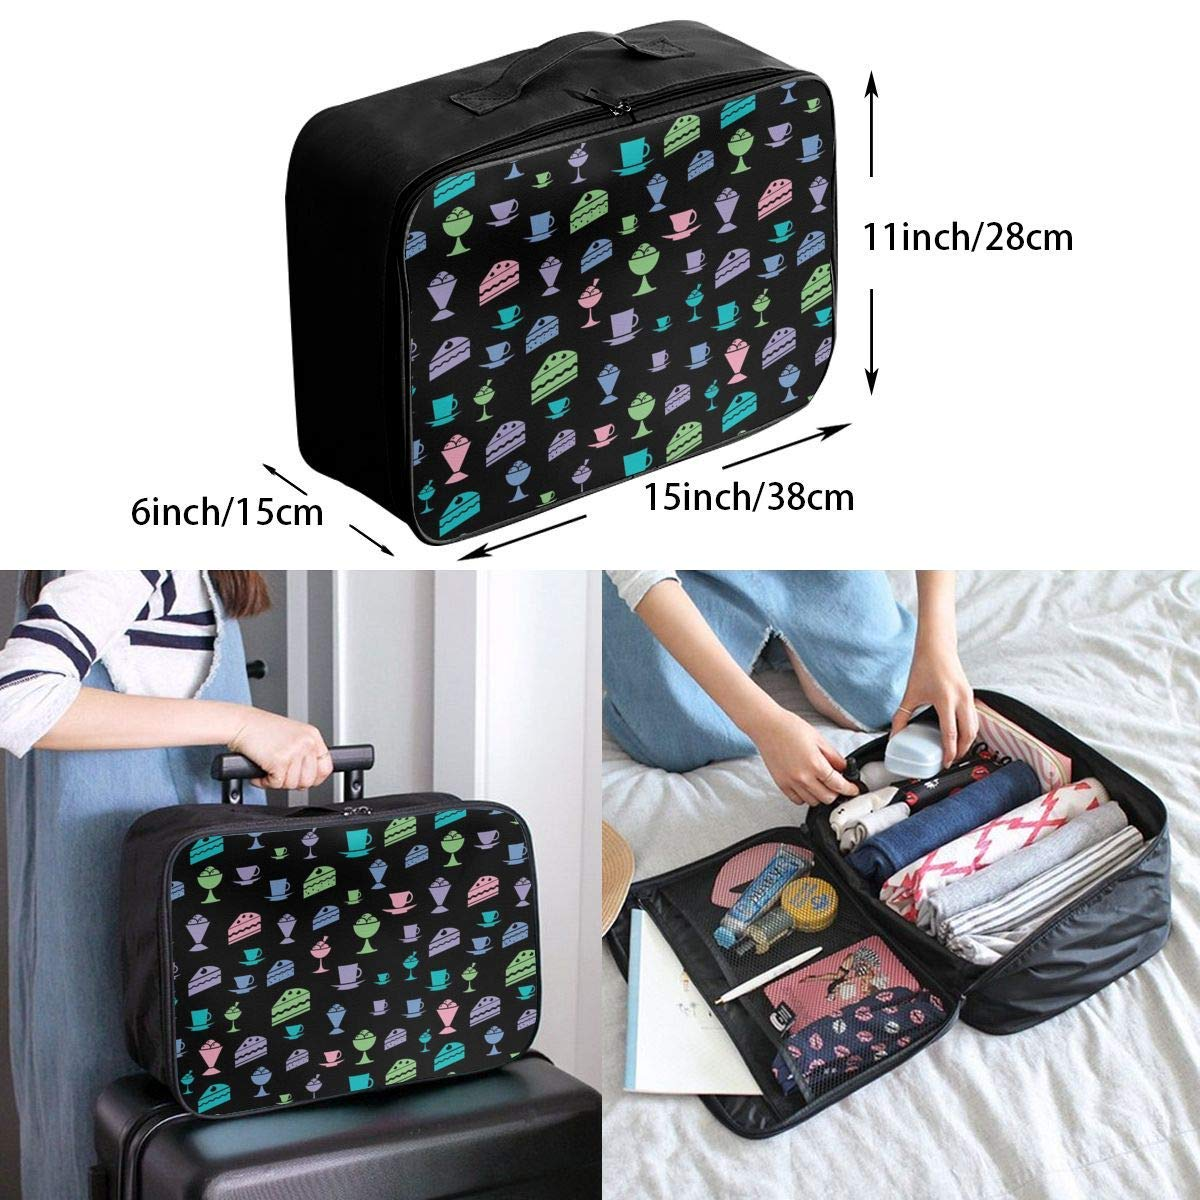 JTRVW Luggage Bags for Travel Lightweight Large Capacity Portable Duffel Bag for Men /& Women Colorful Cake Travel Duffel Bag Backpack